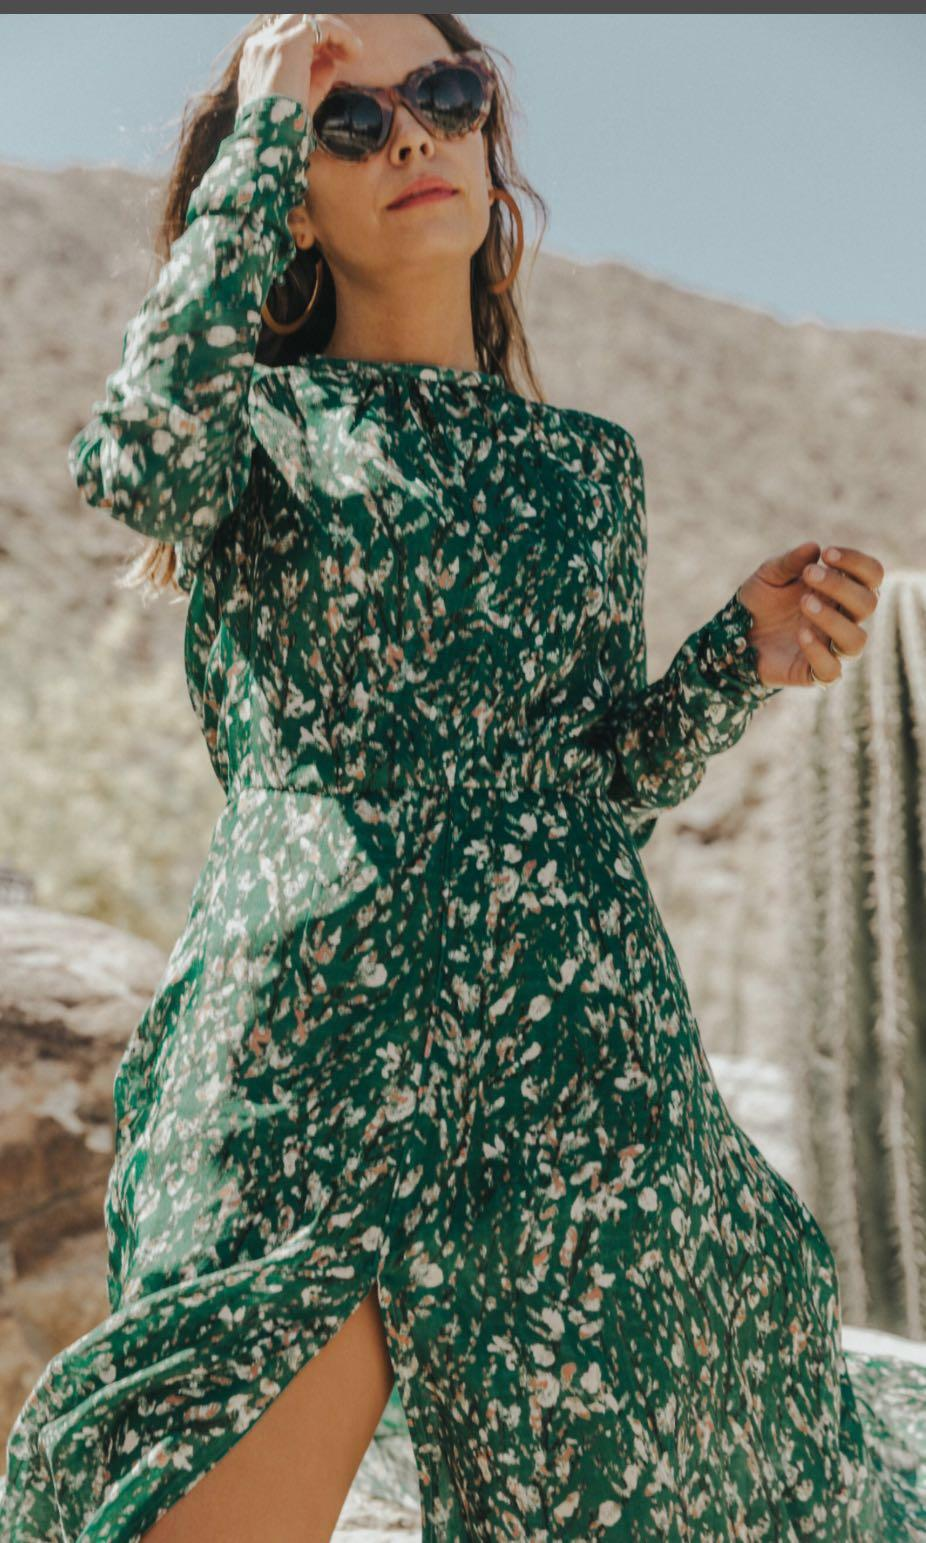 h&m limited edition collection 2018